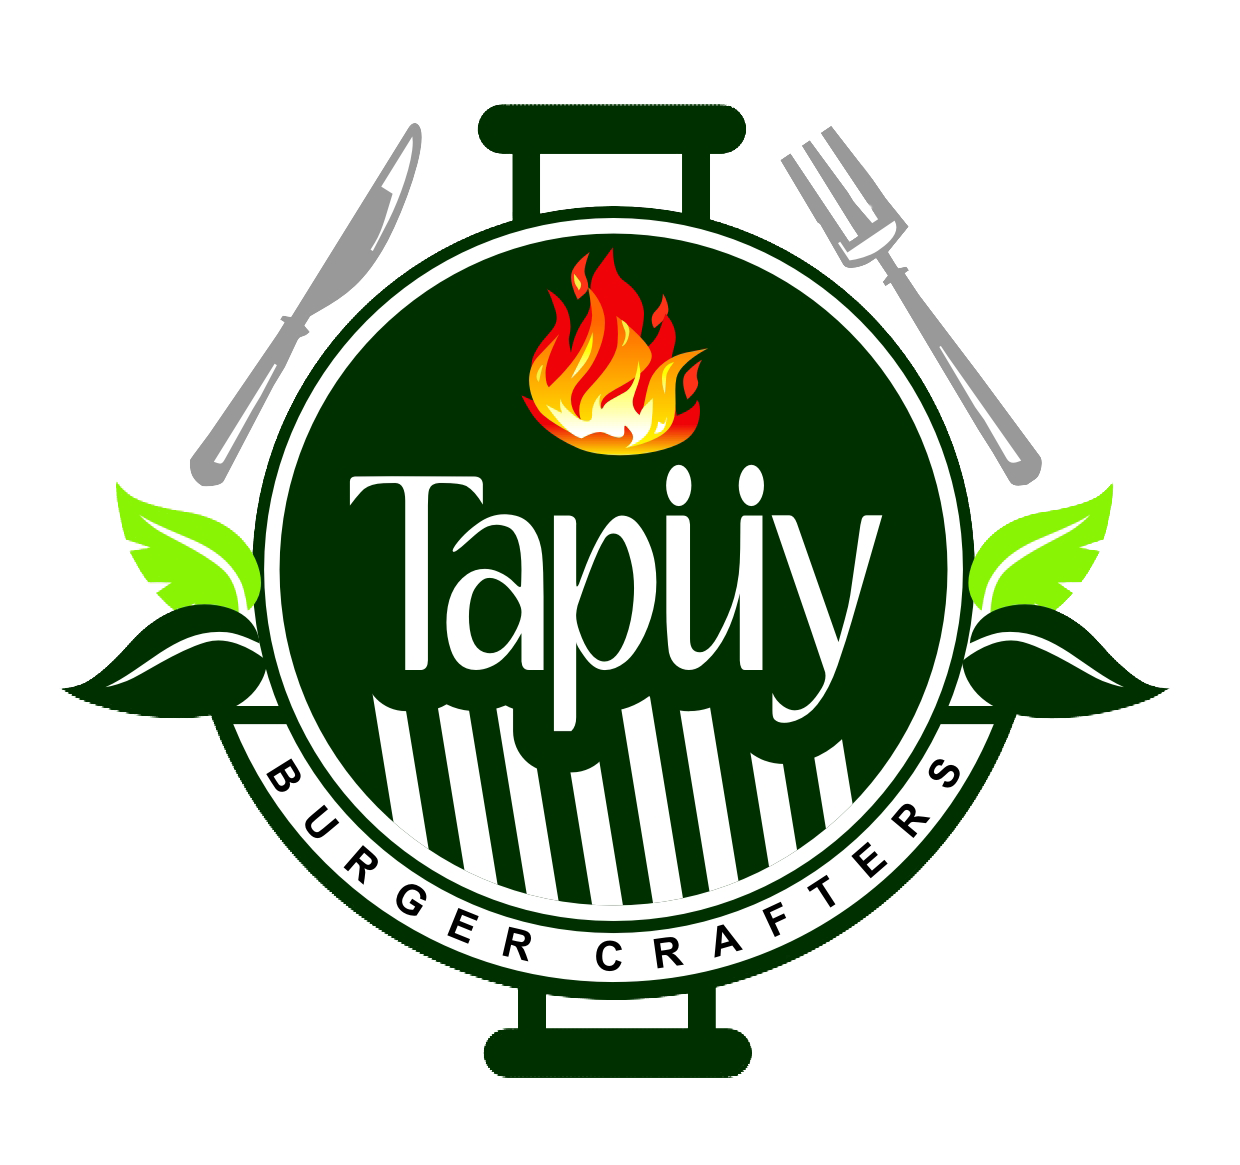 Tapuy Burger Crafters logo